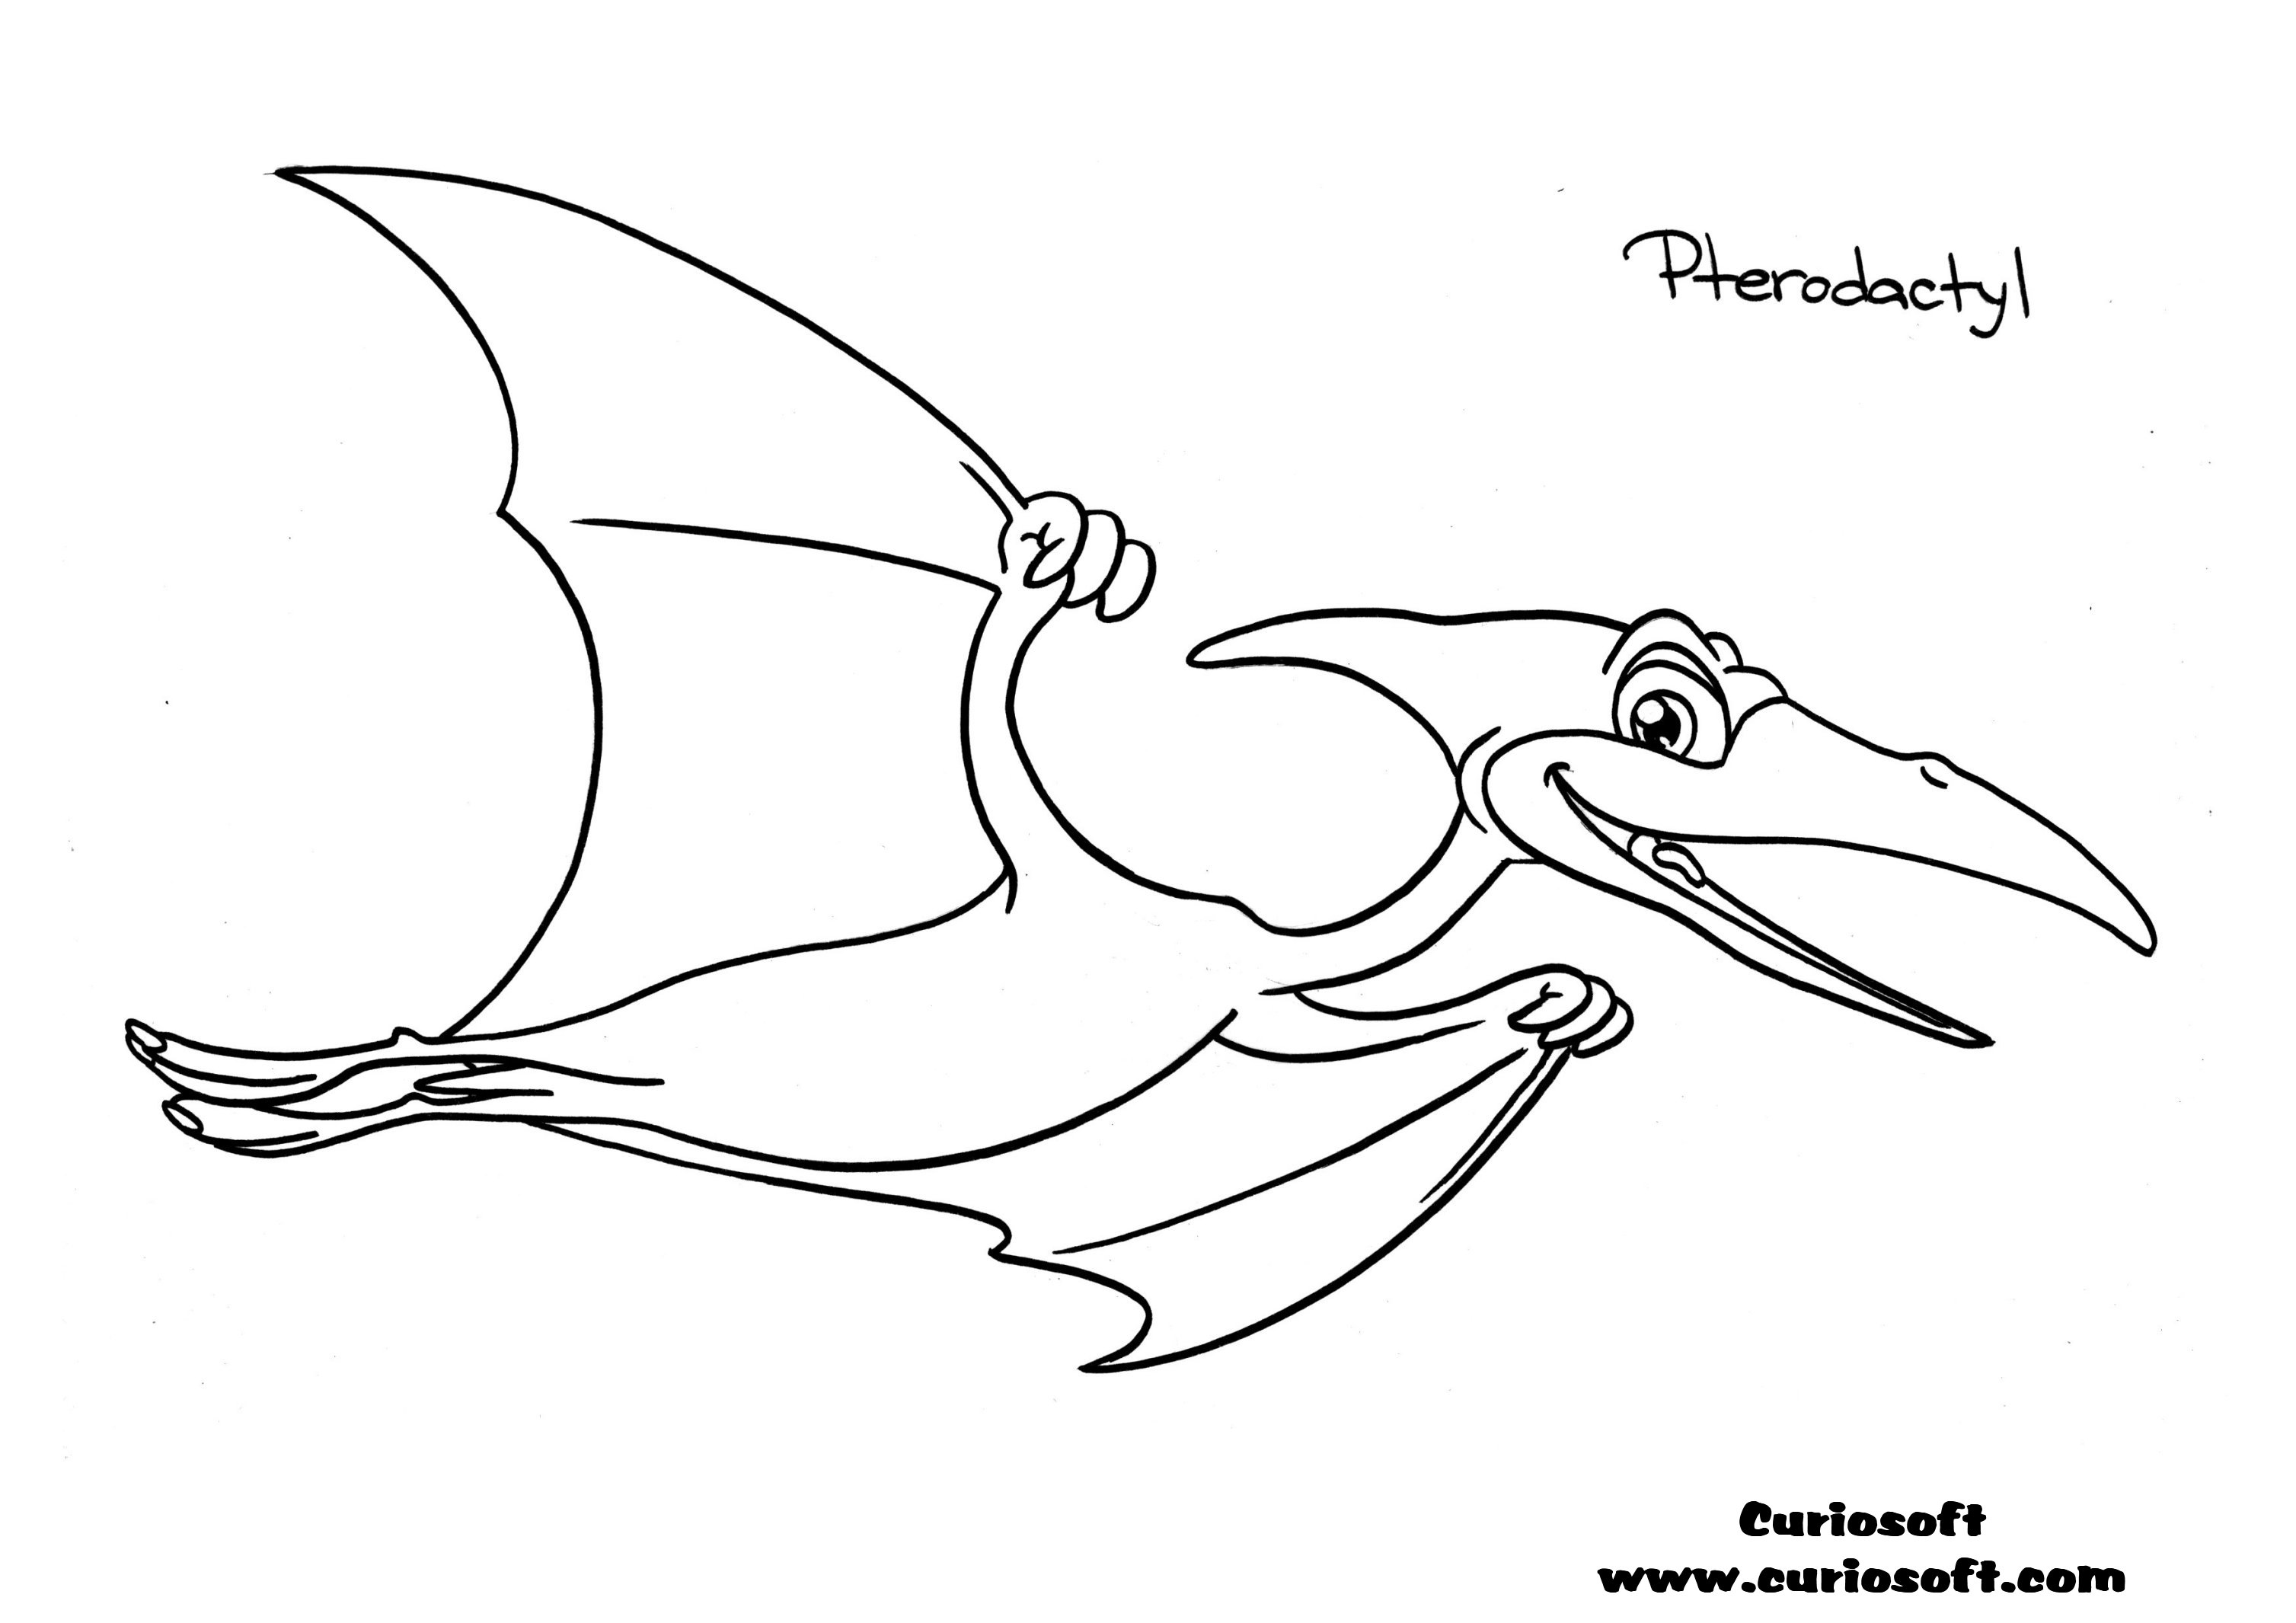 Pterodactyl Dinosaur Coloring Coloring Pages